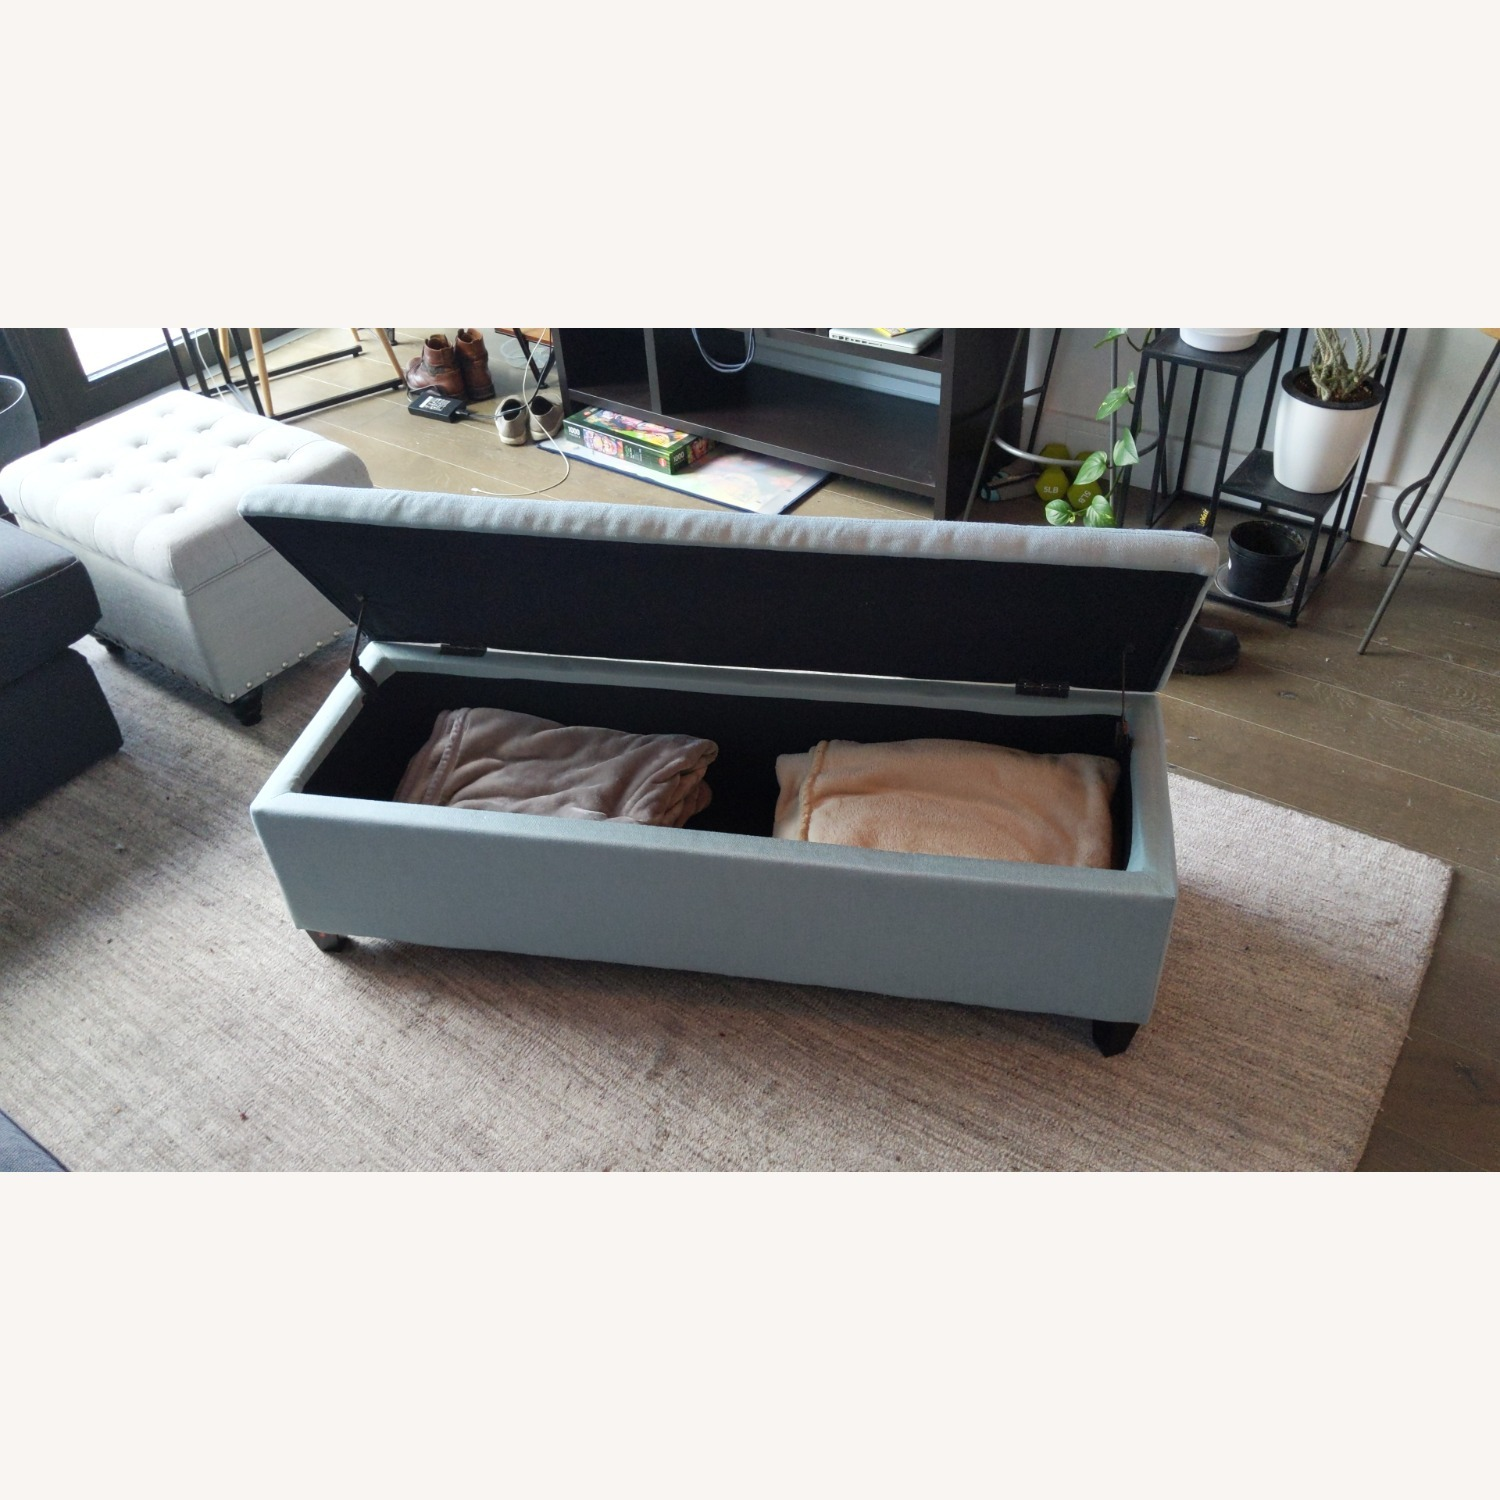 Storage Bench for Sofa - image-2